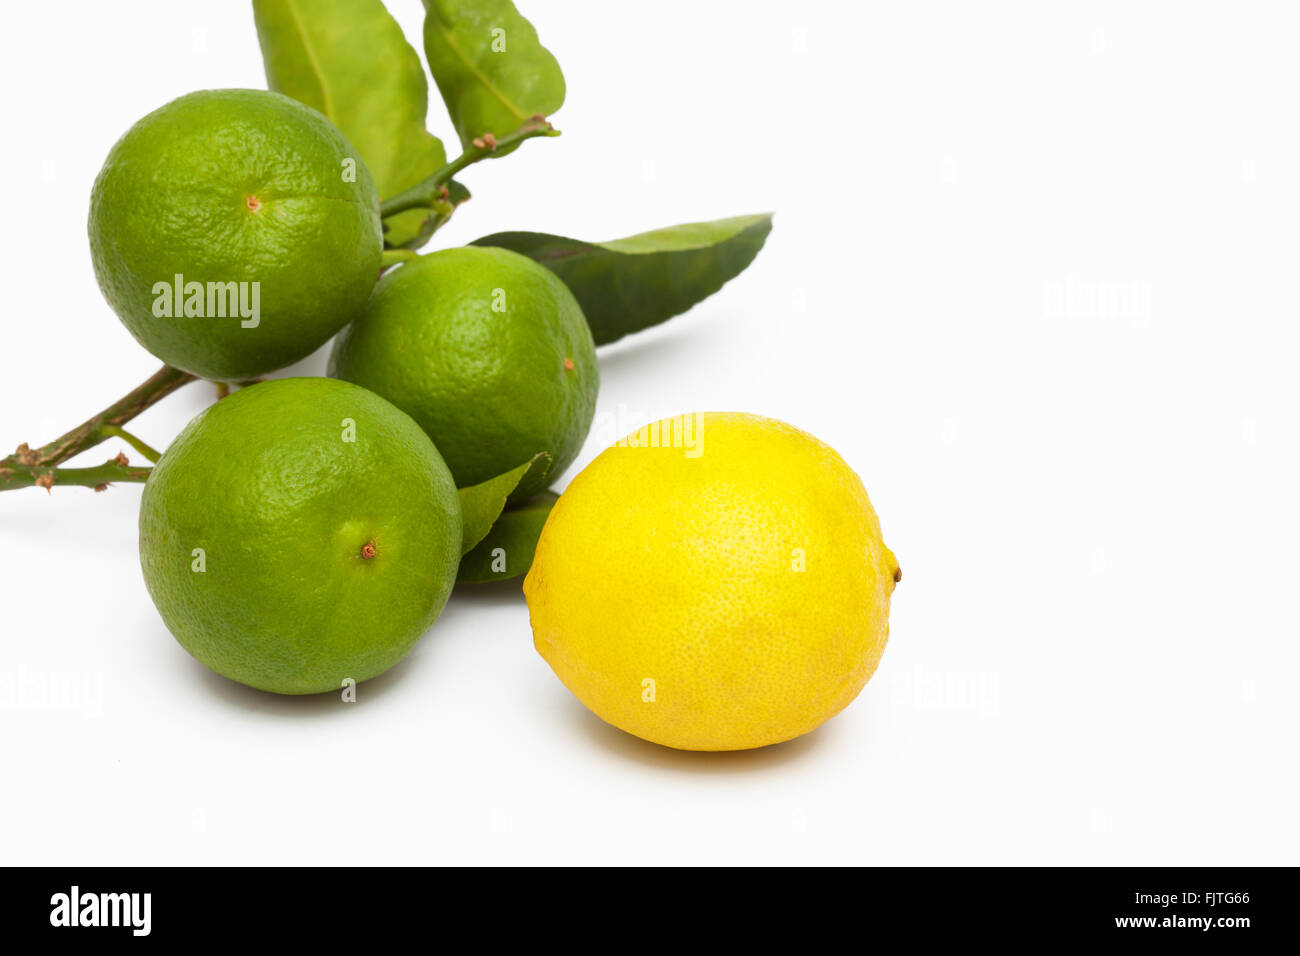 Freshly picked key limes from a Florida garden - Stock Image